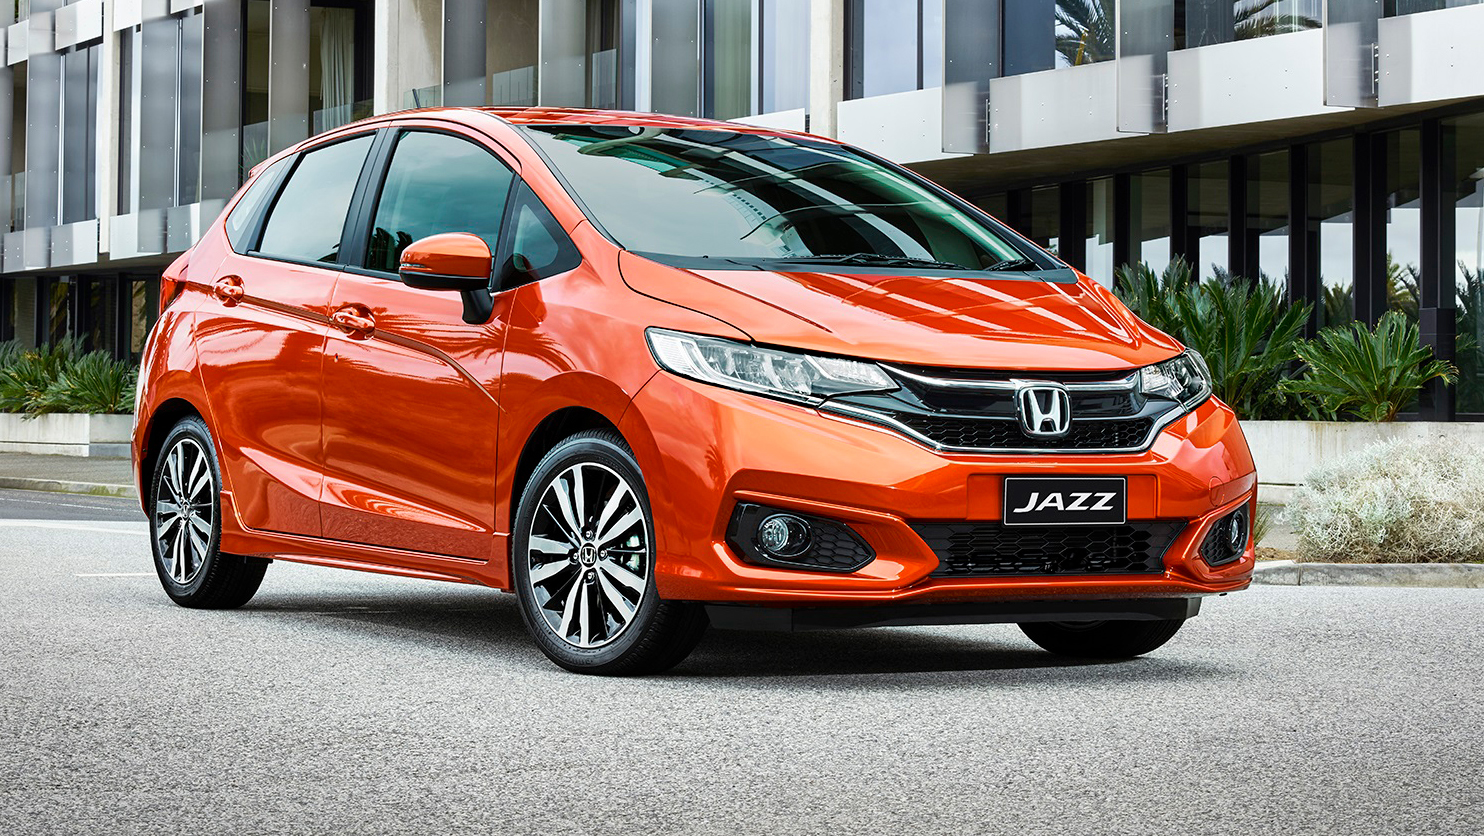 Recalls Honda Com >> 2018 Honda Jazz pricing and specs: Updated styling, more standard features - photos | CarAdvice